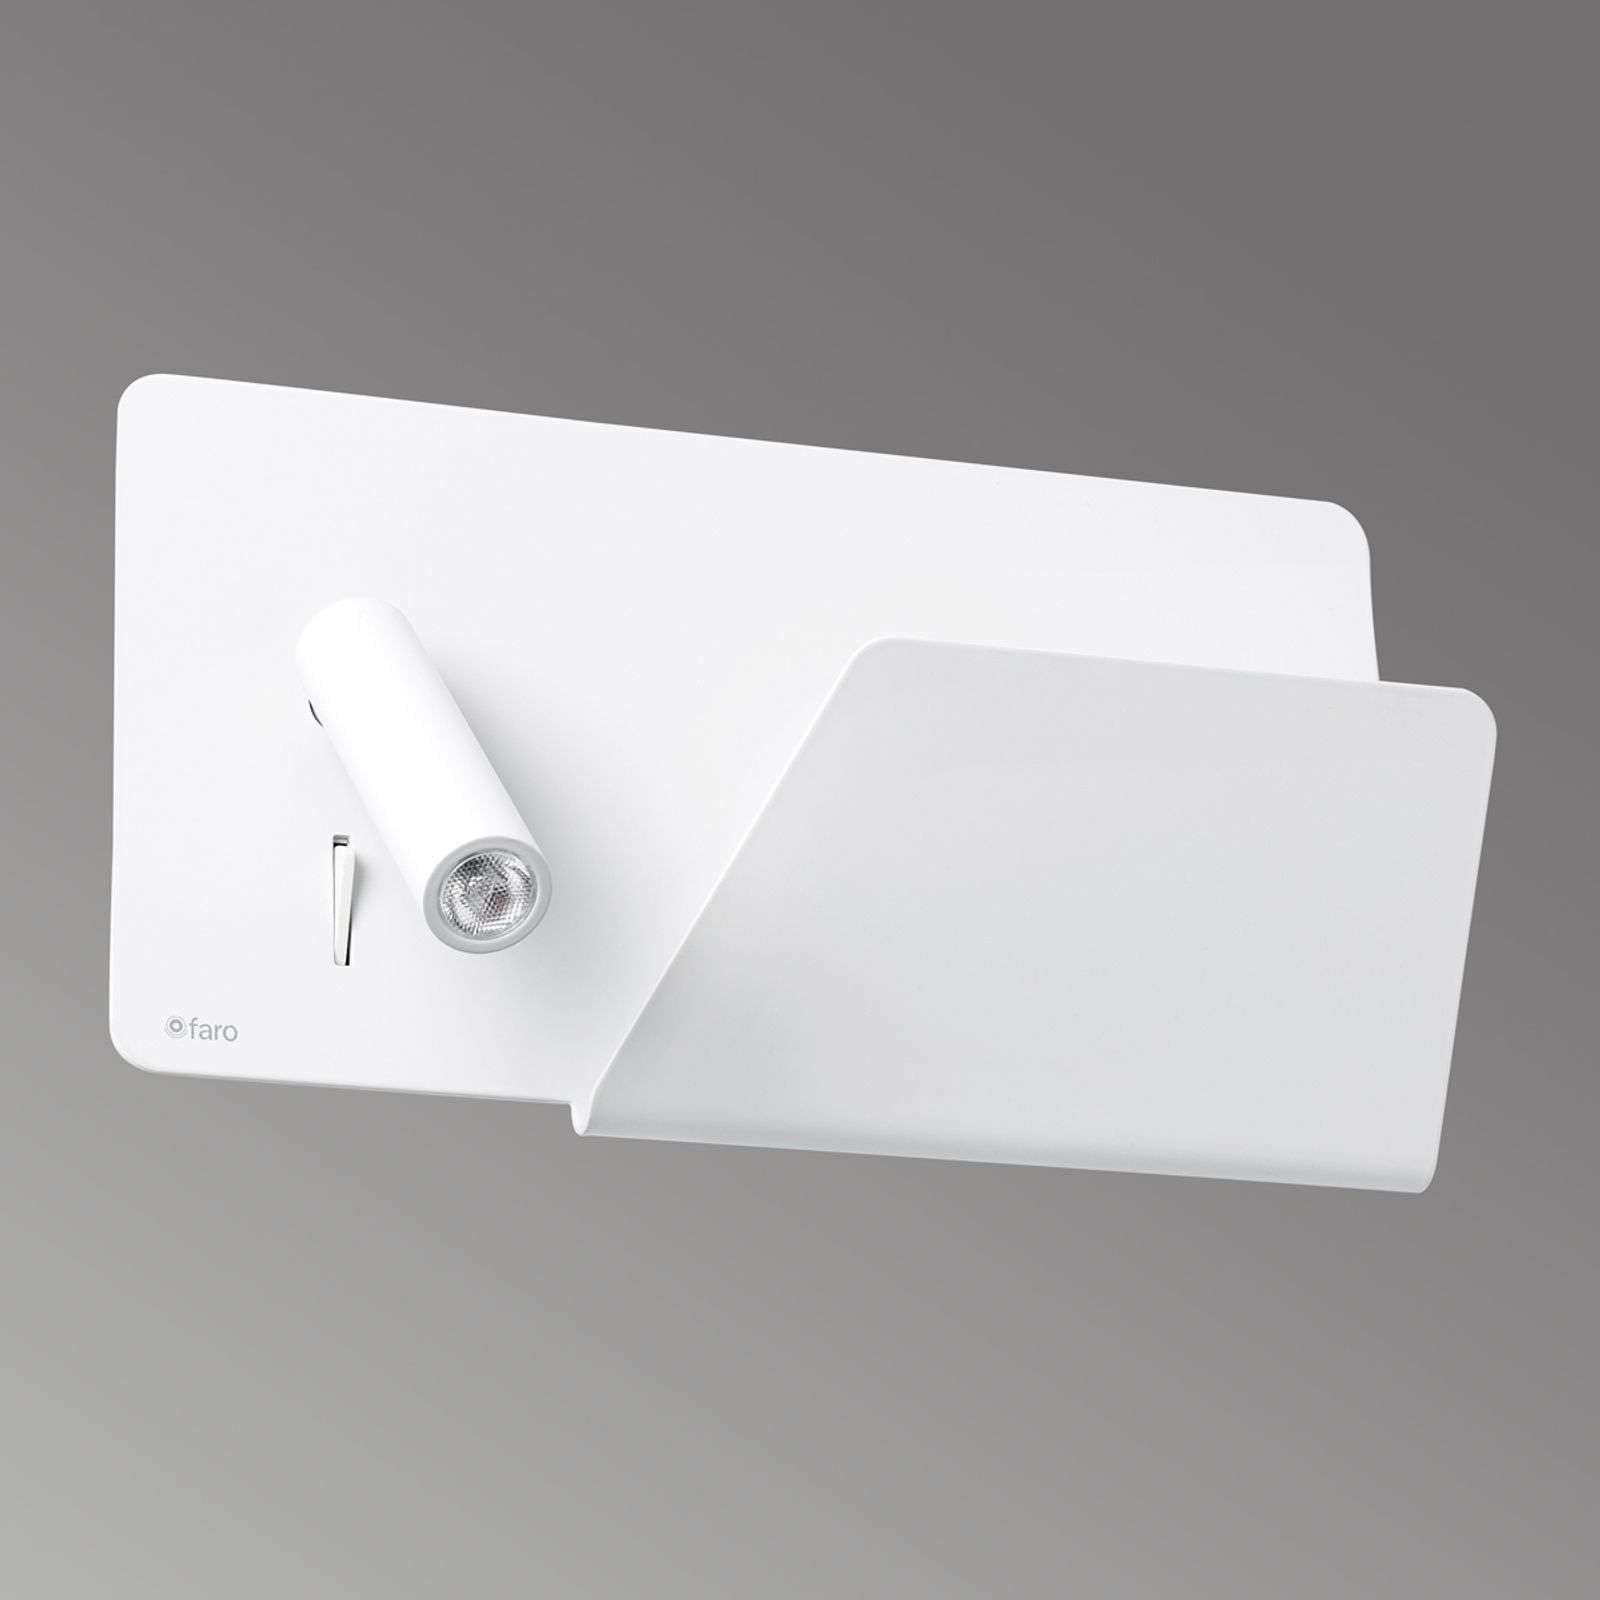 Aplique de pared LED Suau con puerto de carga USB